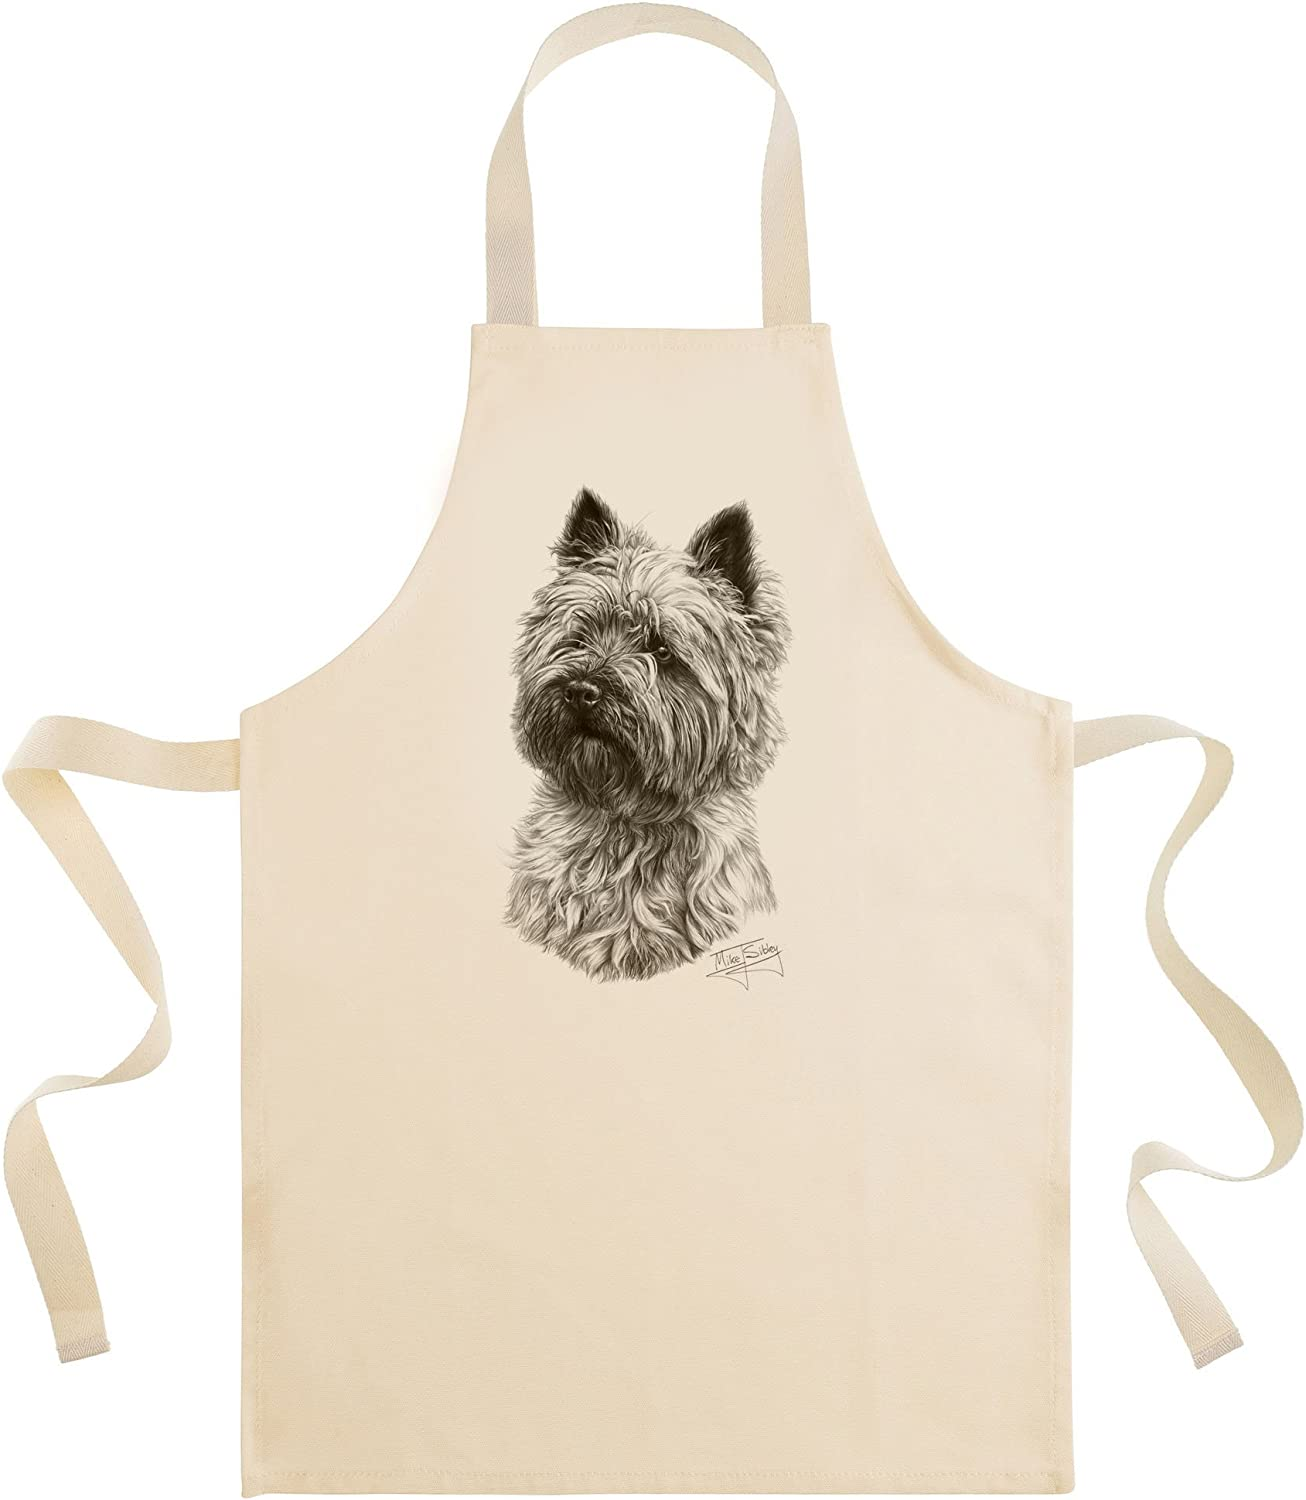 Mike Sibley Cairn Terrier Cotton Drill Apron Amazon Co Uk Kitchen Home